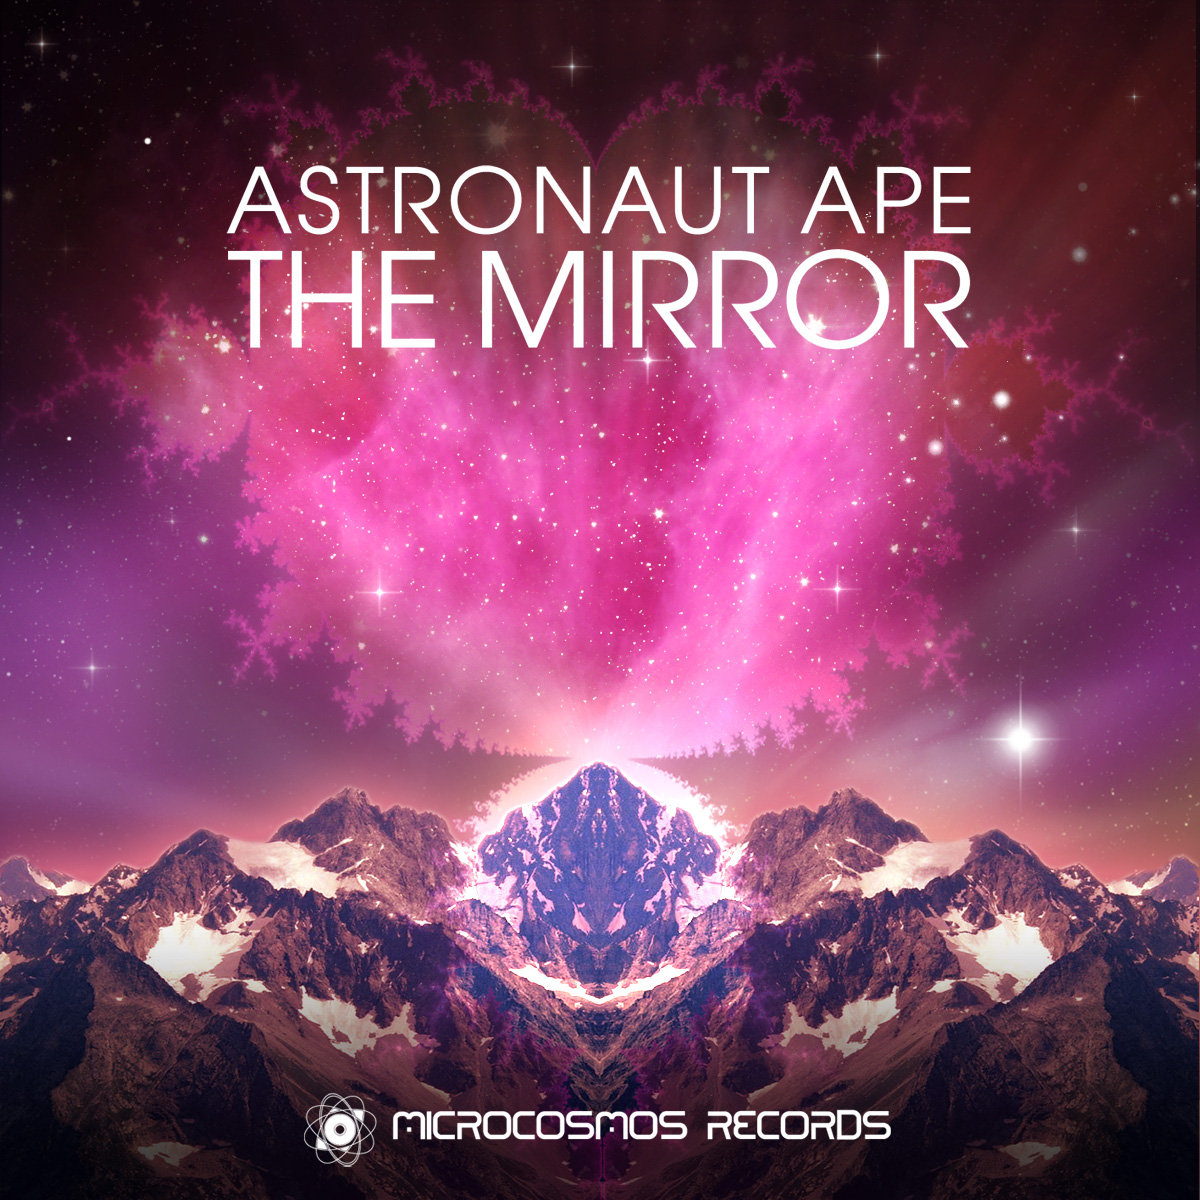 Astronaut Ape - One Plus One @ 'The Mirror' album (ambient, chill-out)